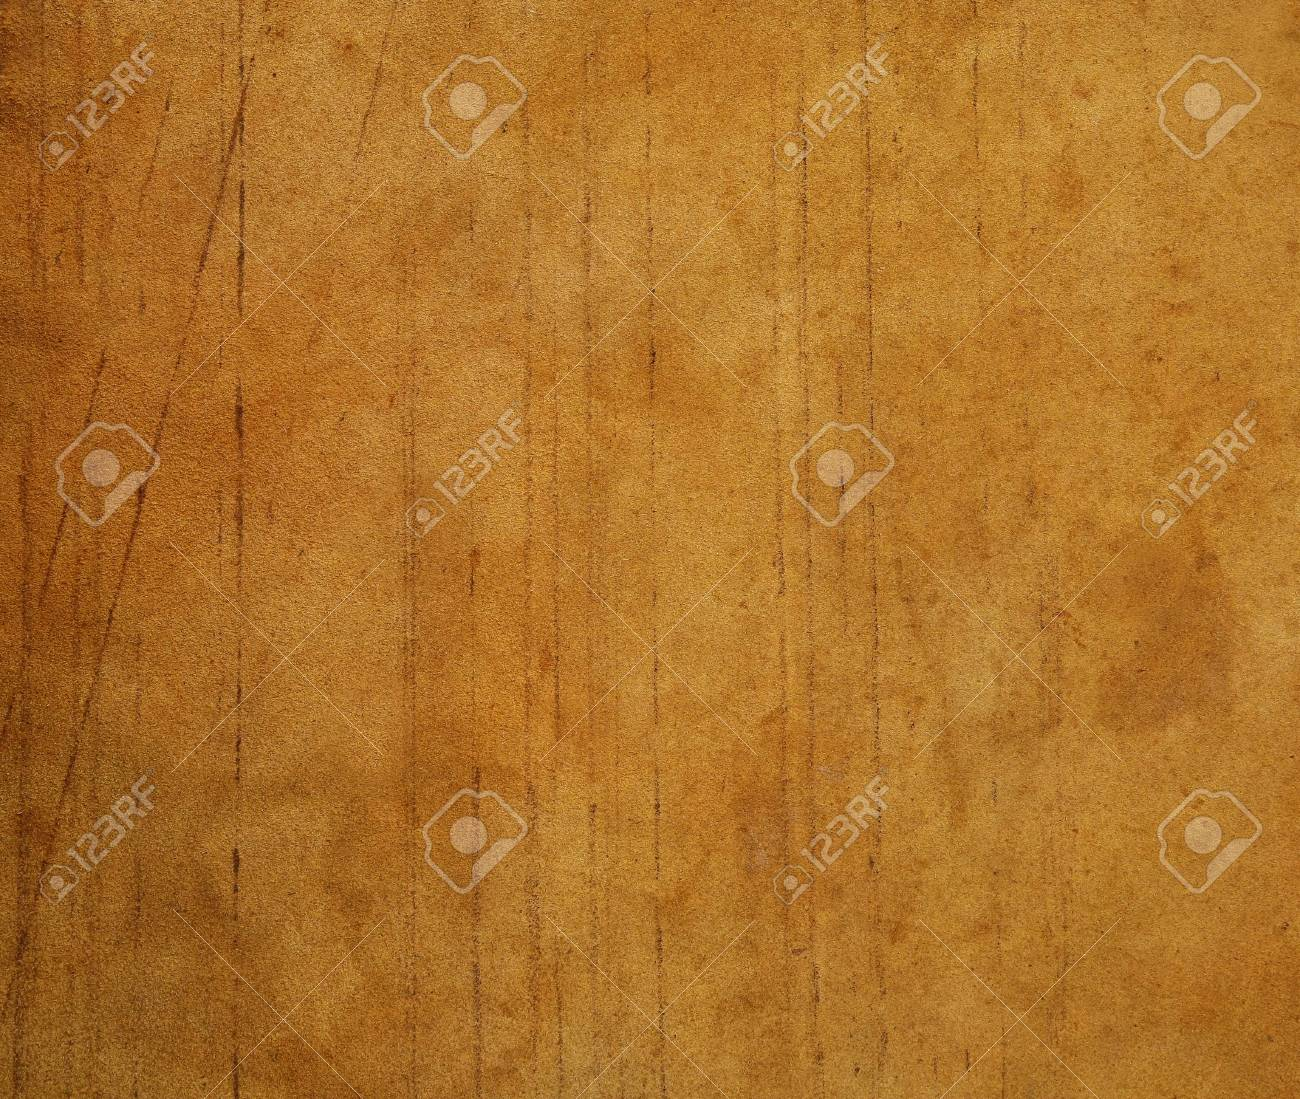 old brown leather texture Stock Photo - 21094160